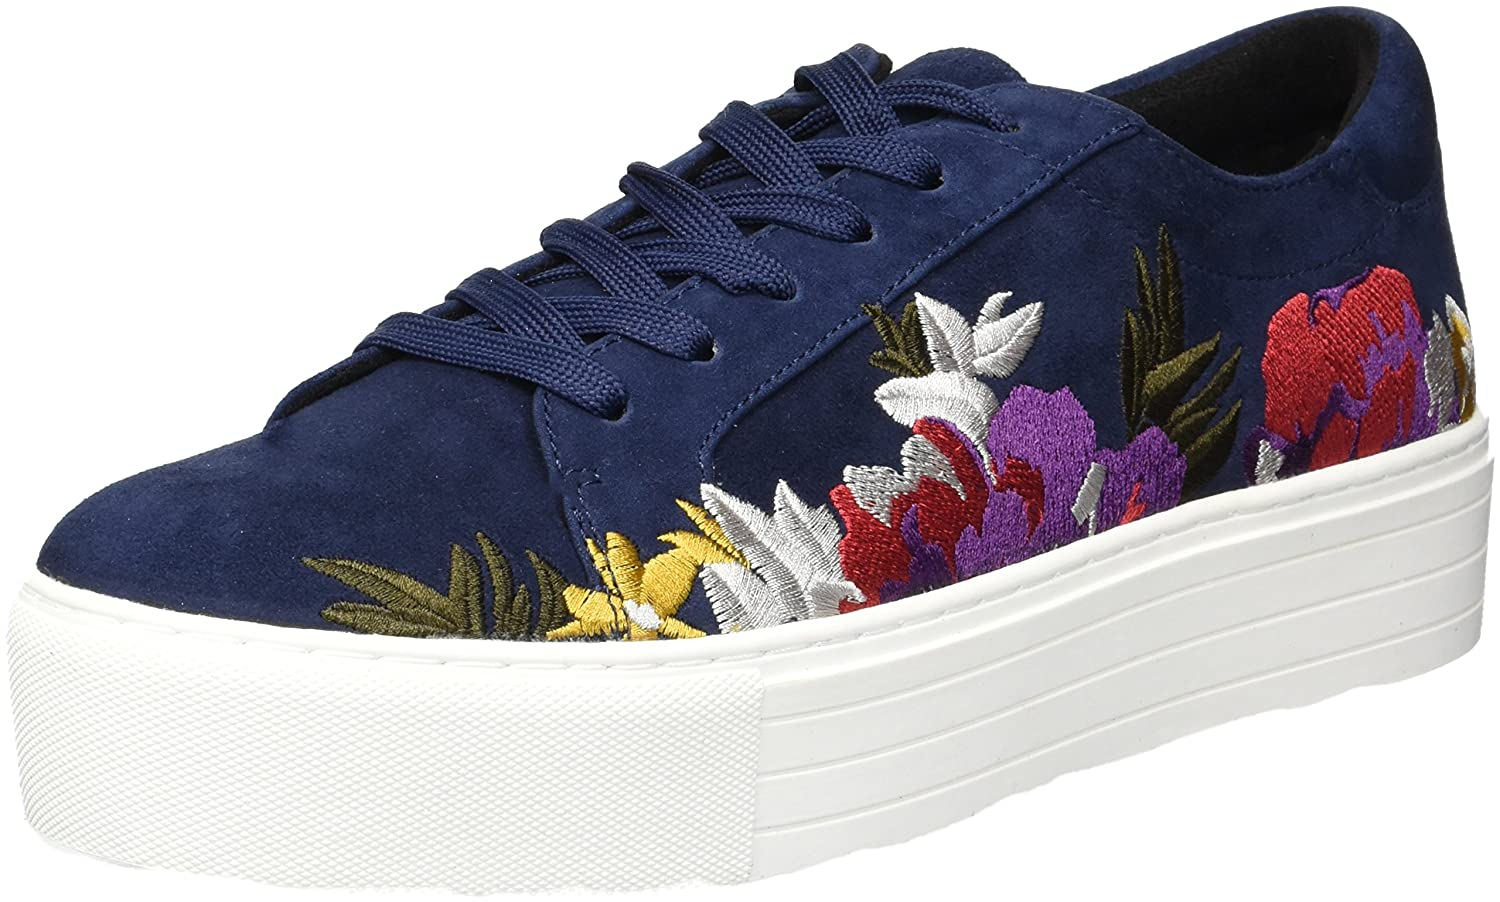 Kenneth Cole New York Women's Abbey 2 Platform Lace-up Embroidered Sneaker B073XLD7CS 7 B(M) US|Navy